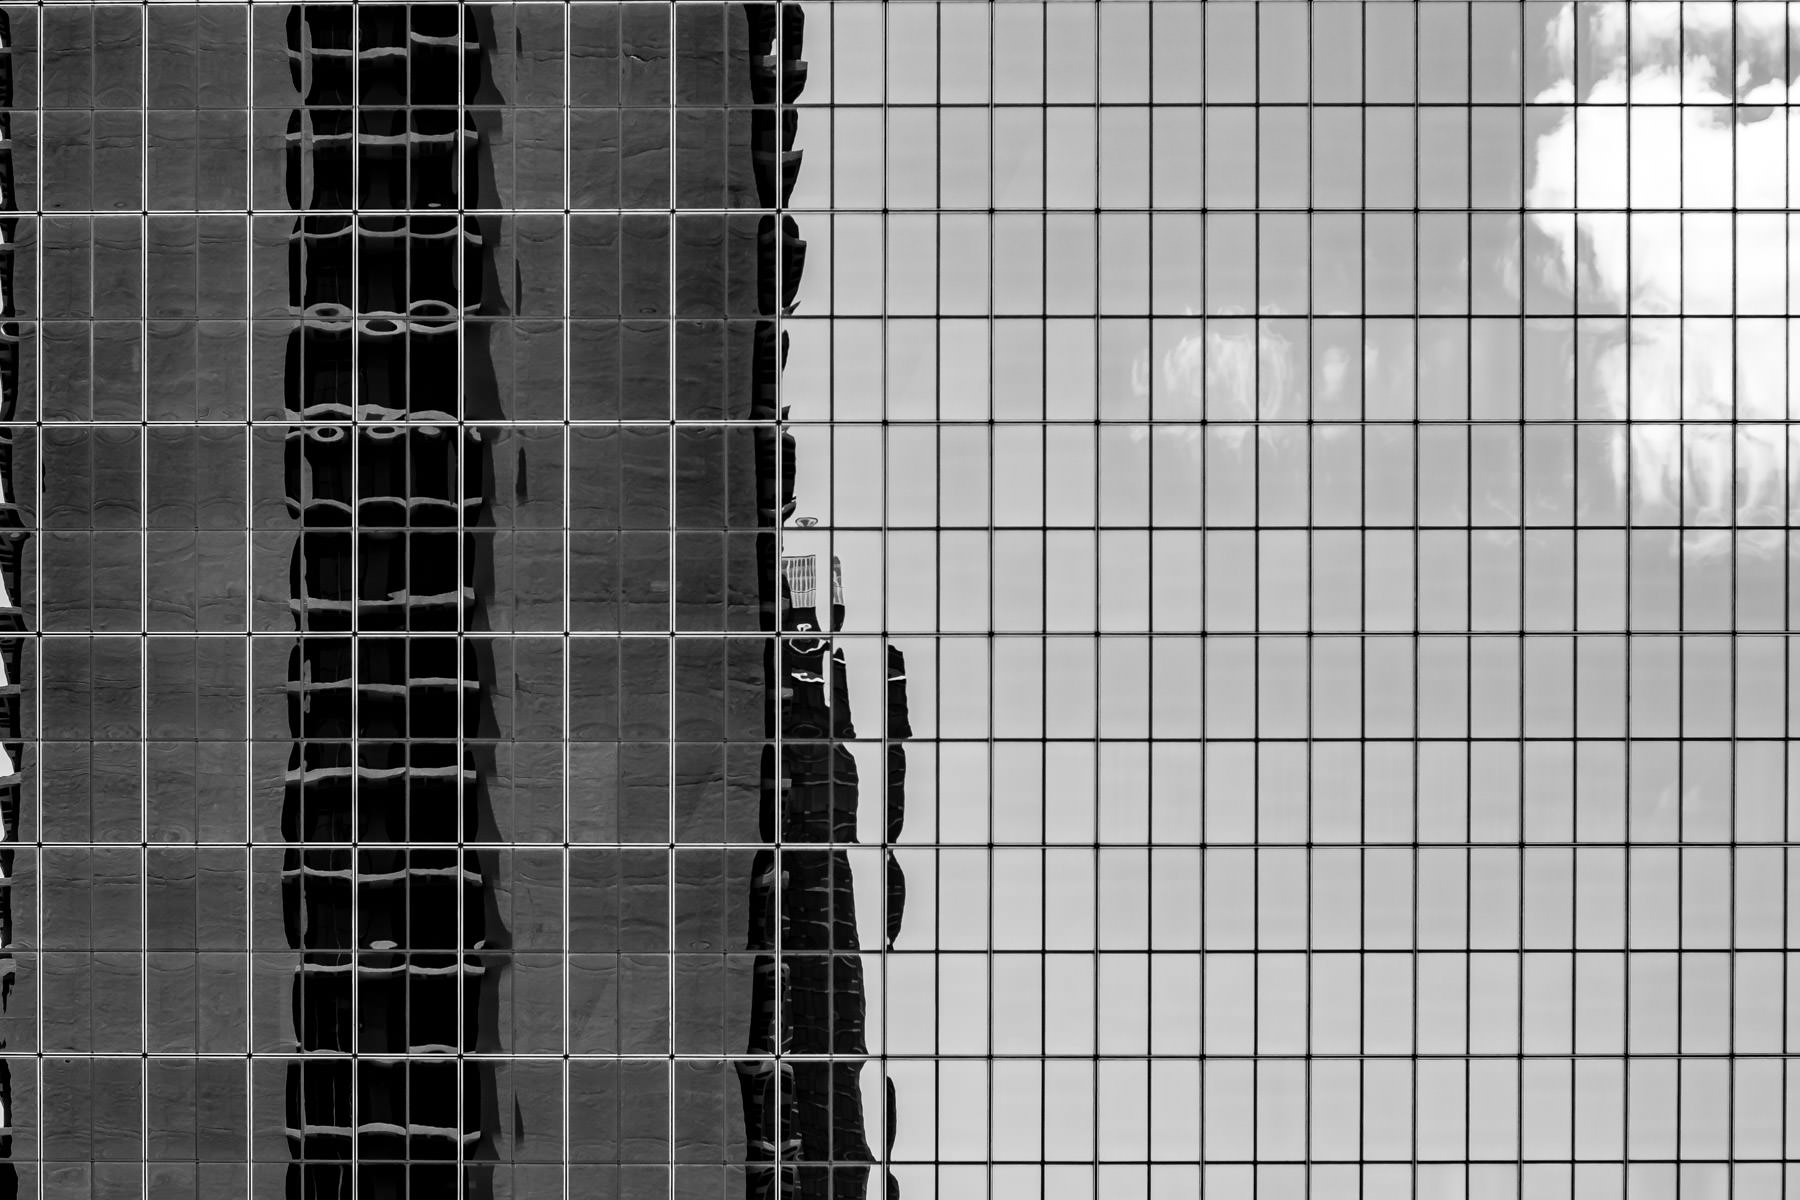 One of the towers of Downtown Dallas' Fairmont Hotel reflects in the mirror-like windows of an adjacent building.